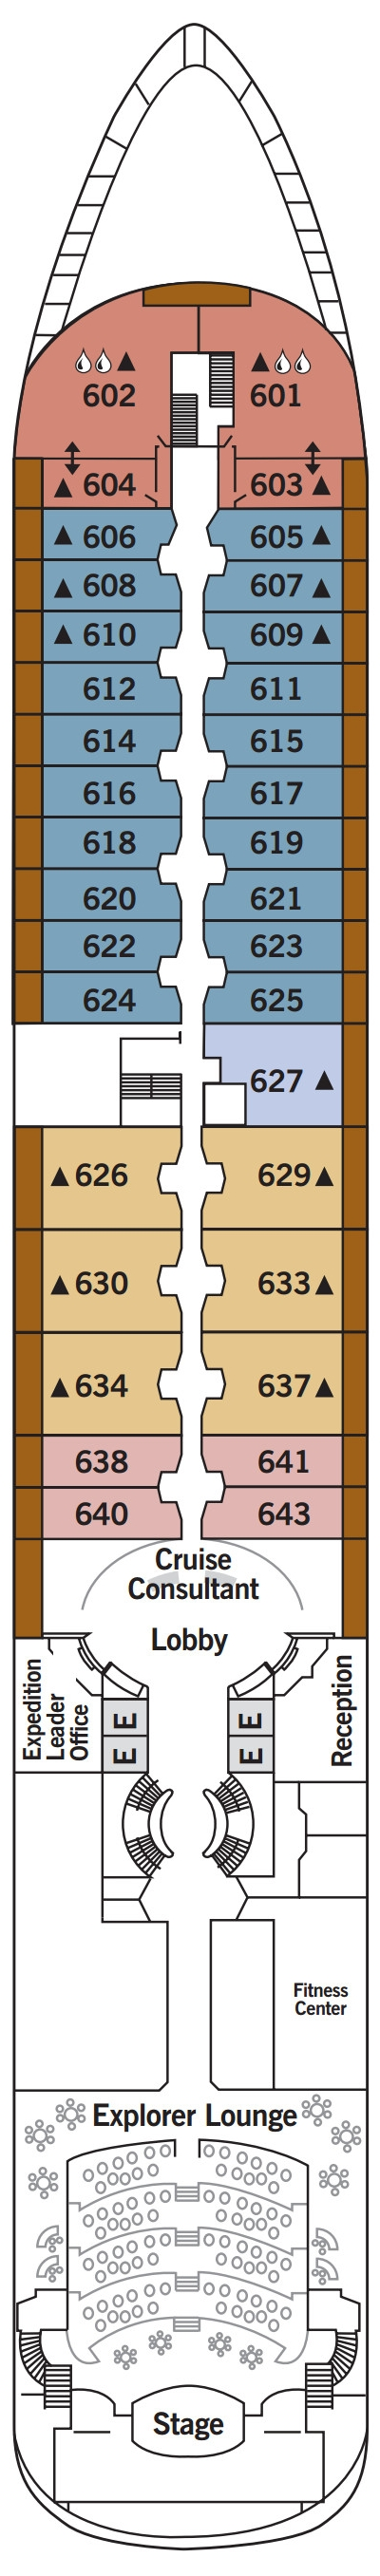 Silver Cloud Deck 6 layout